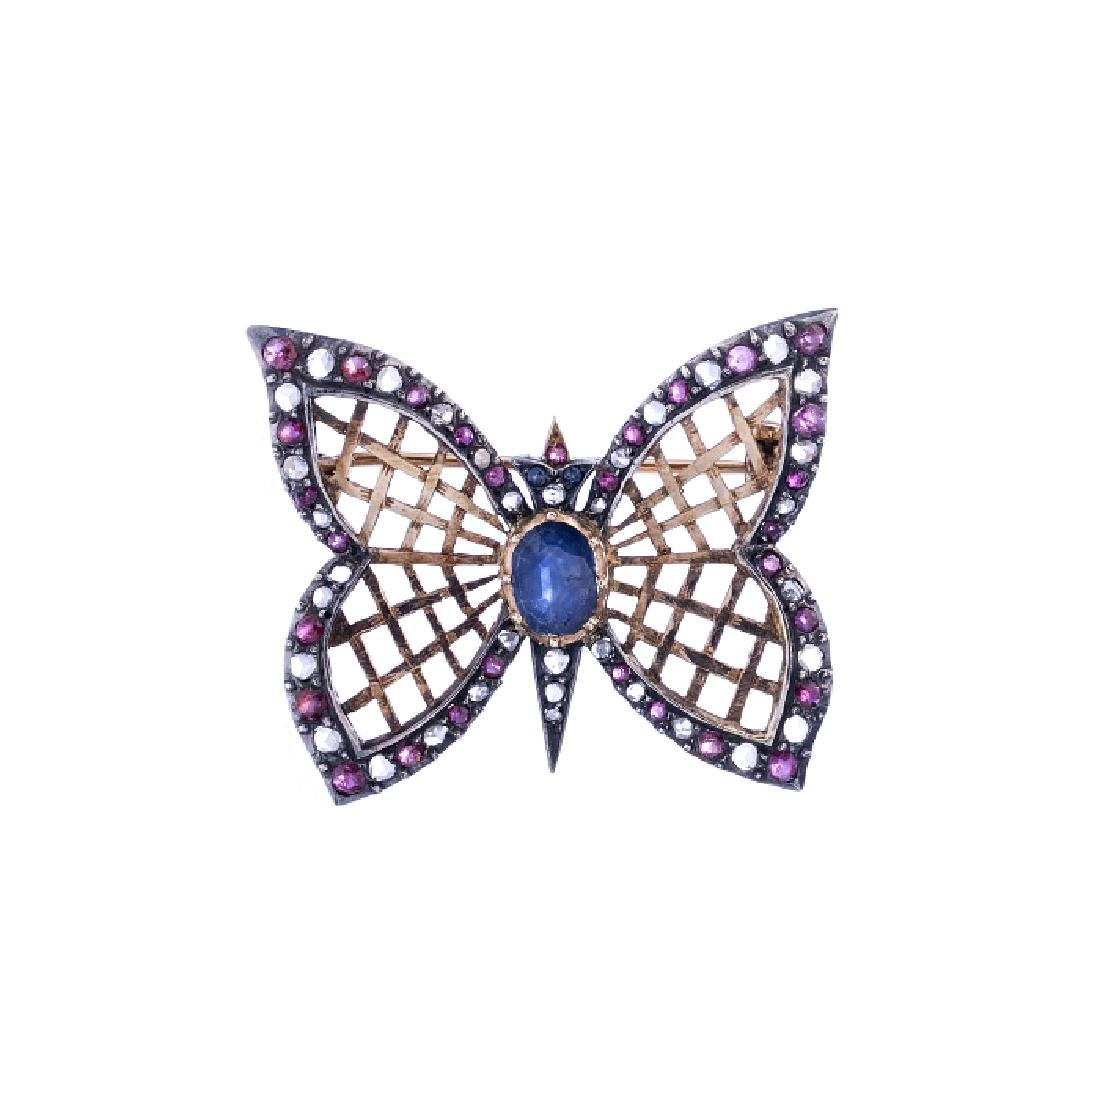 Pin with a 'butterfly' in silver and gold, with